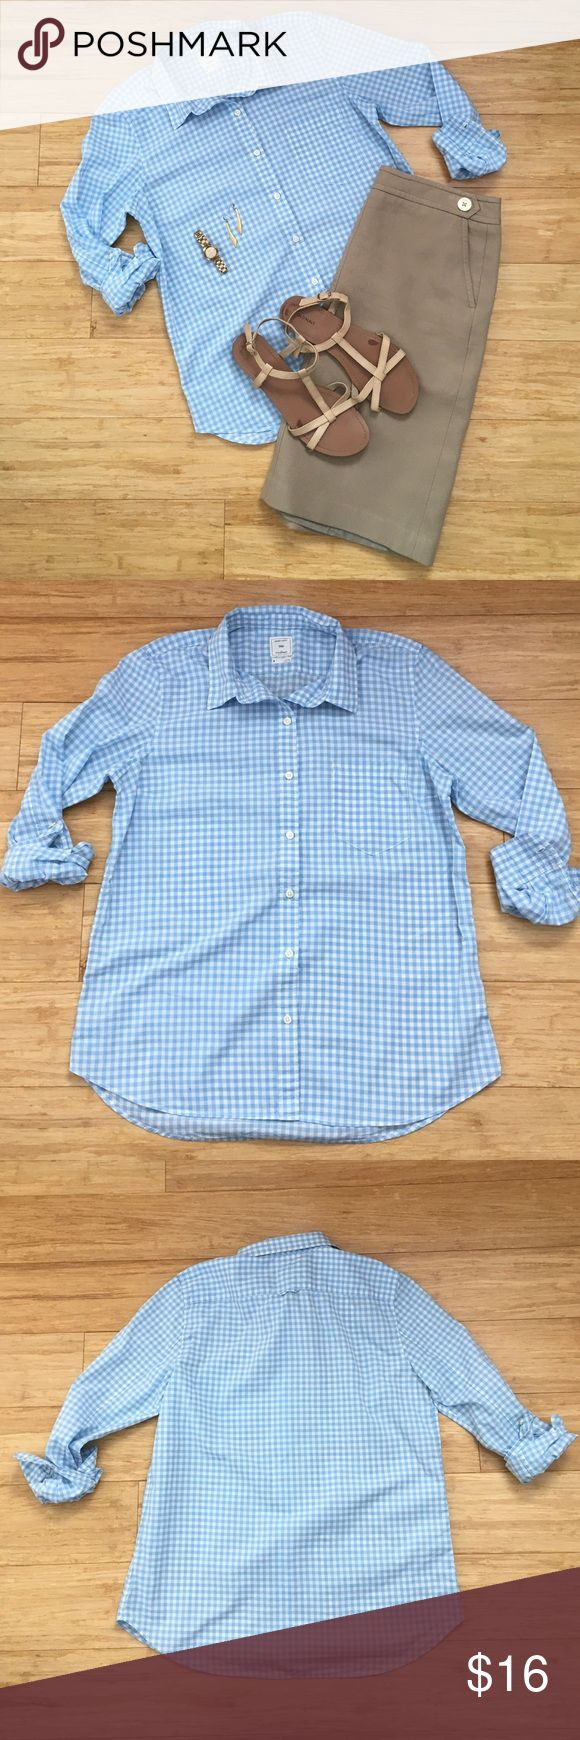 GAP Blue Gingham Shirt I wish this one fit--it was a favorite of mine!  100% cotton, powder blue gingham print.  Fitted boyfriend cut.  EUC.  You will want to wear this with everything, I promise! GAP Tops Button Down Shirts